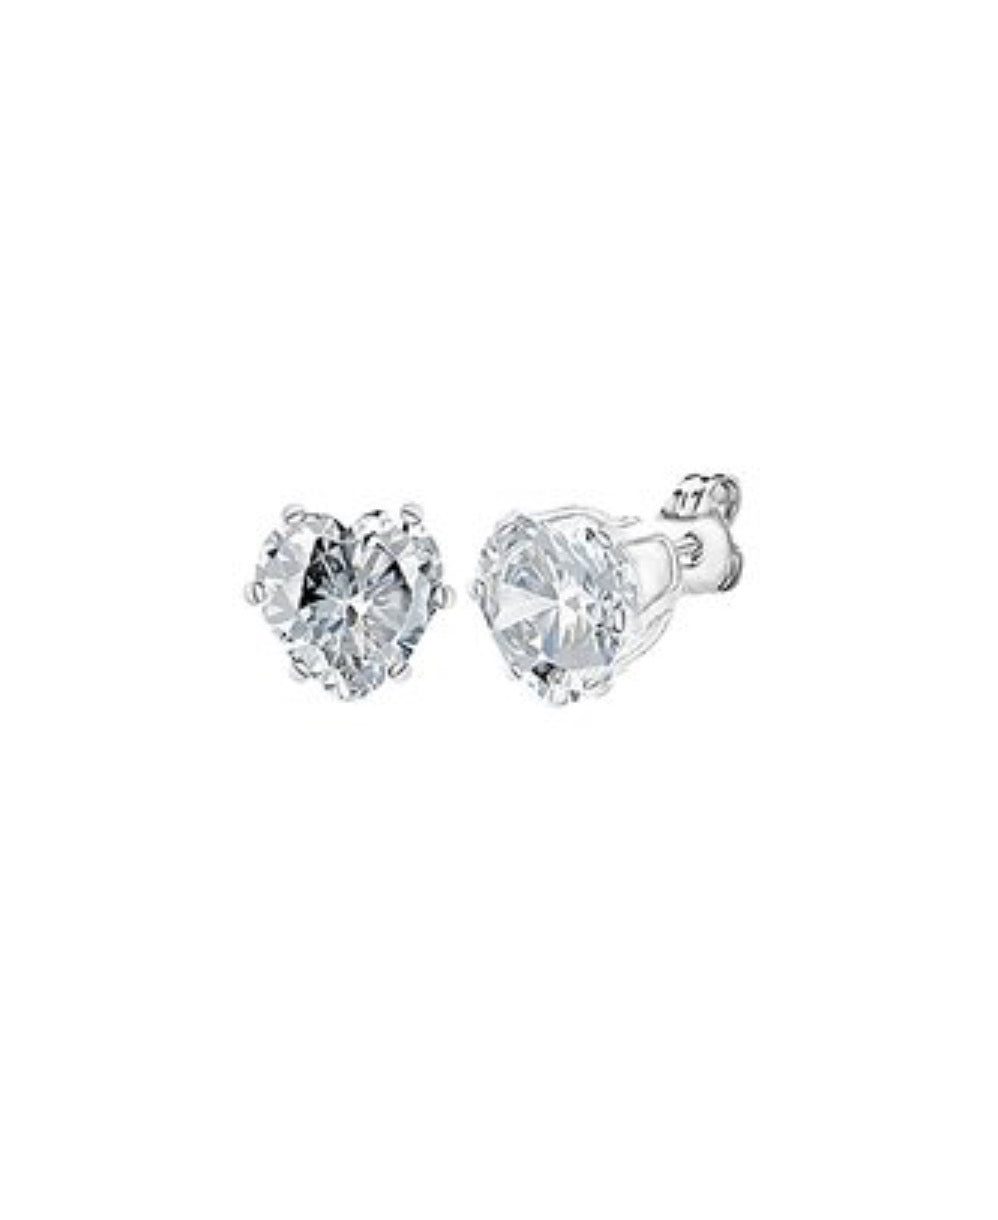 Earrings - Heart Stud Earrings White Gold  Swarovski® Crystals